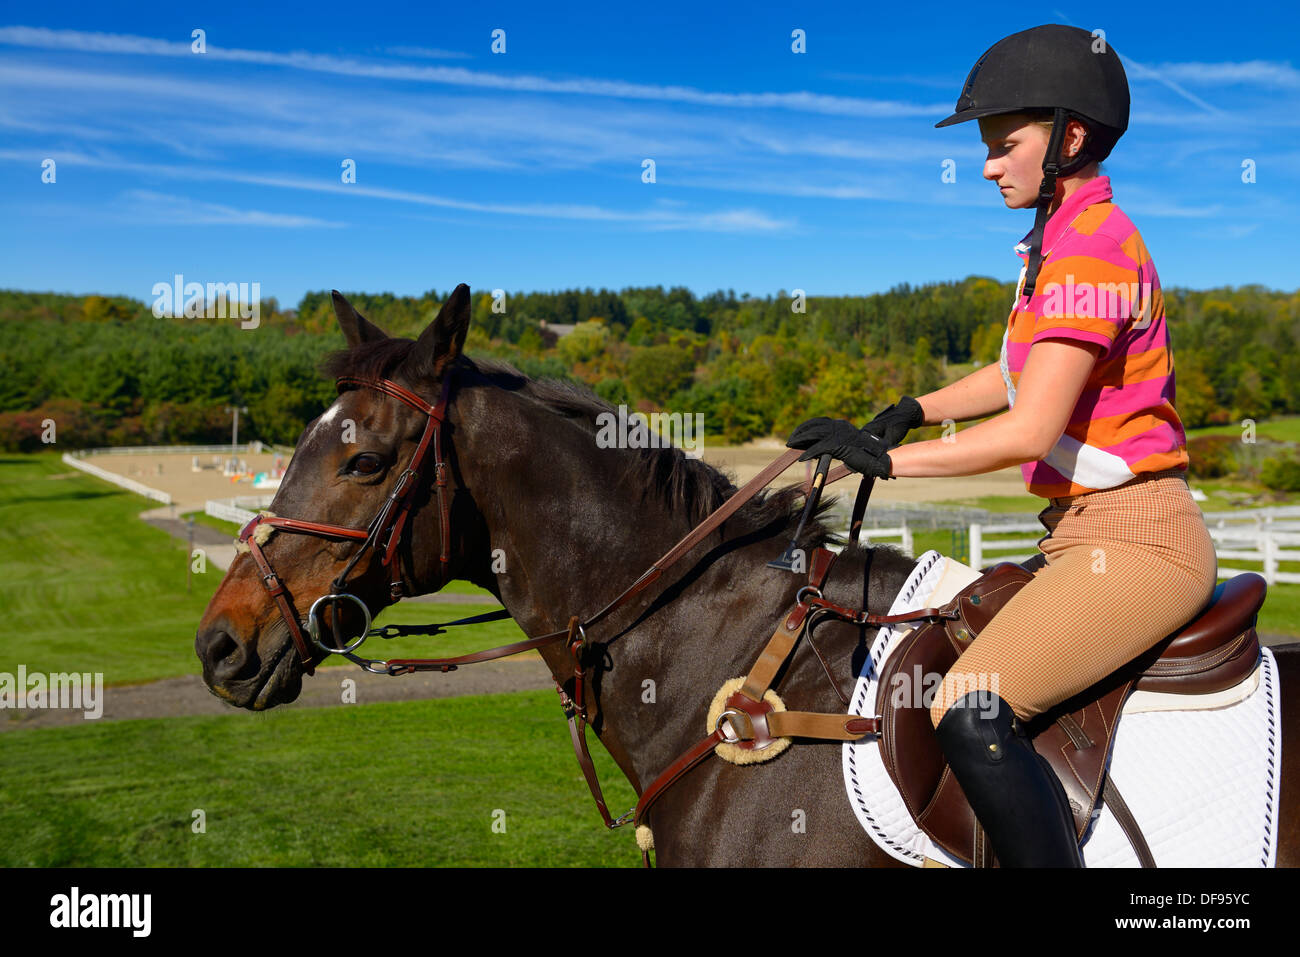 Young female rider mounted on a bay thoroughbred gelding horse going to outdoor training ring Ontario Canada - Stock Image